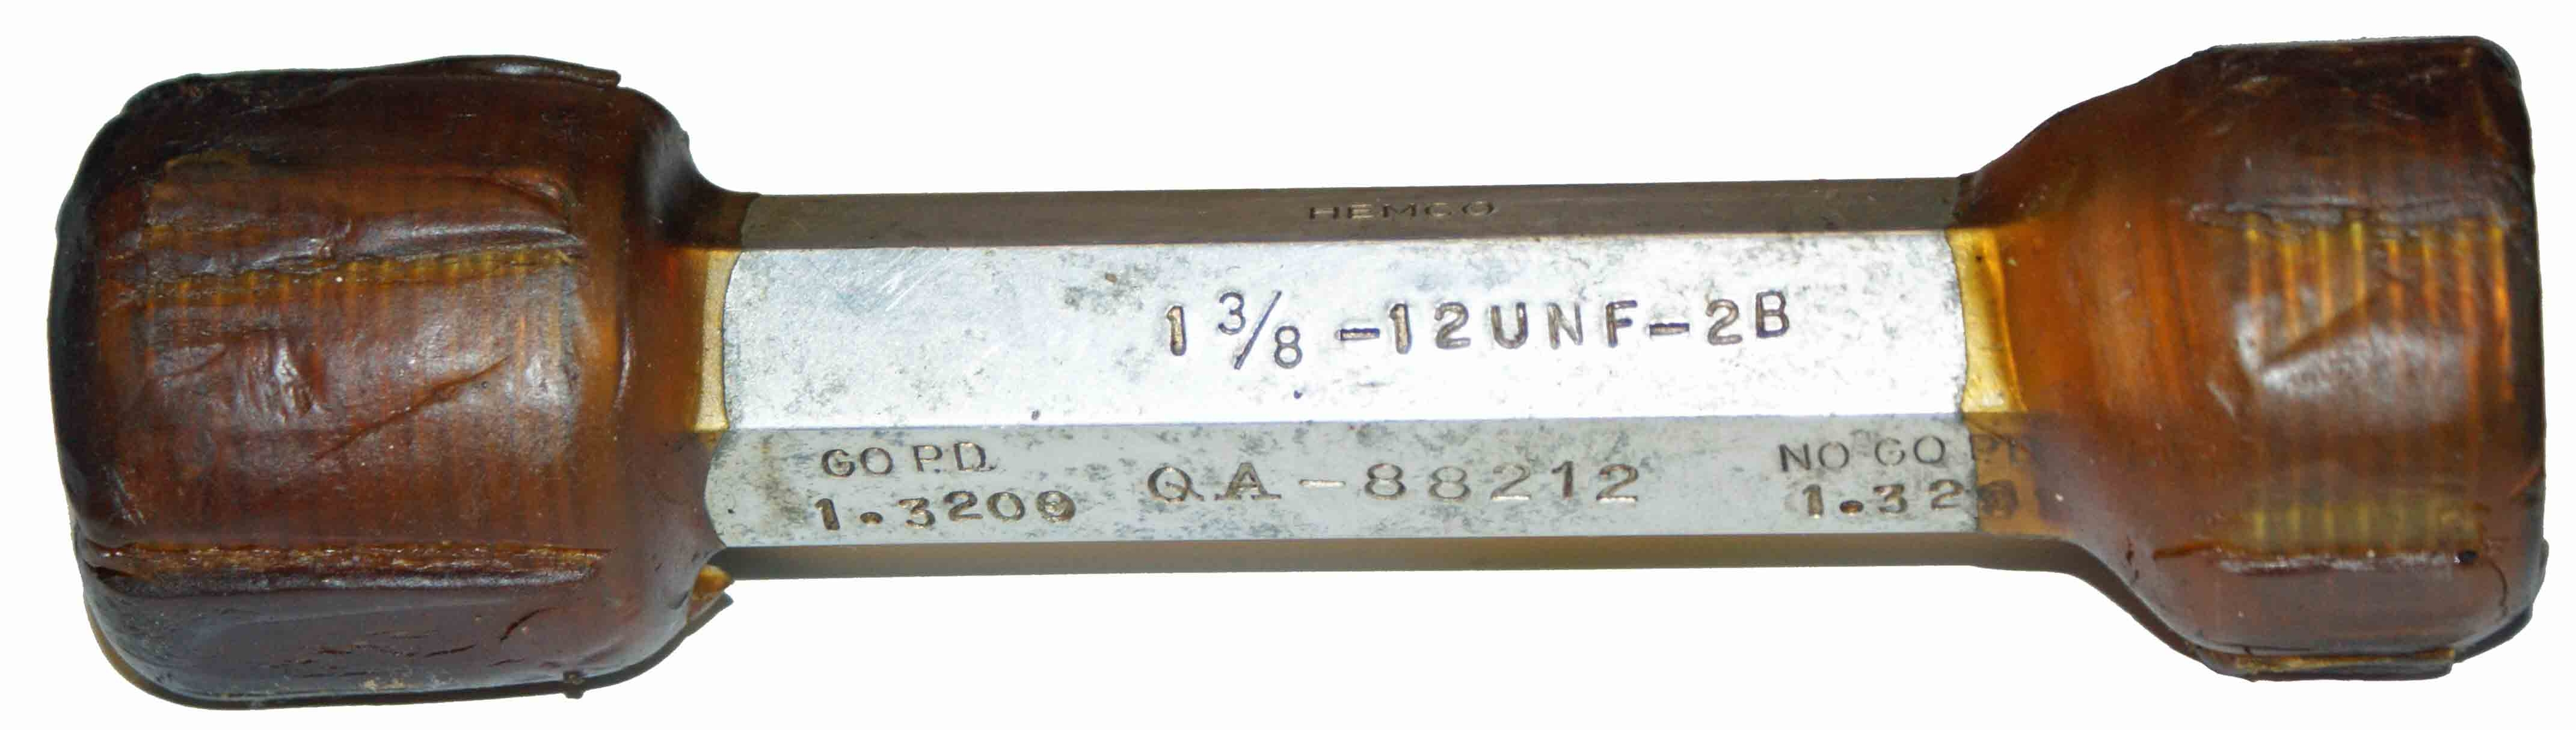 "Thredco 1-3/8"" - 12UNF-2B Plug Style Thread Gage"